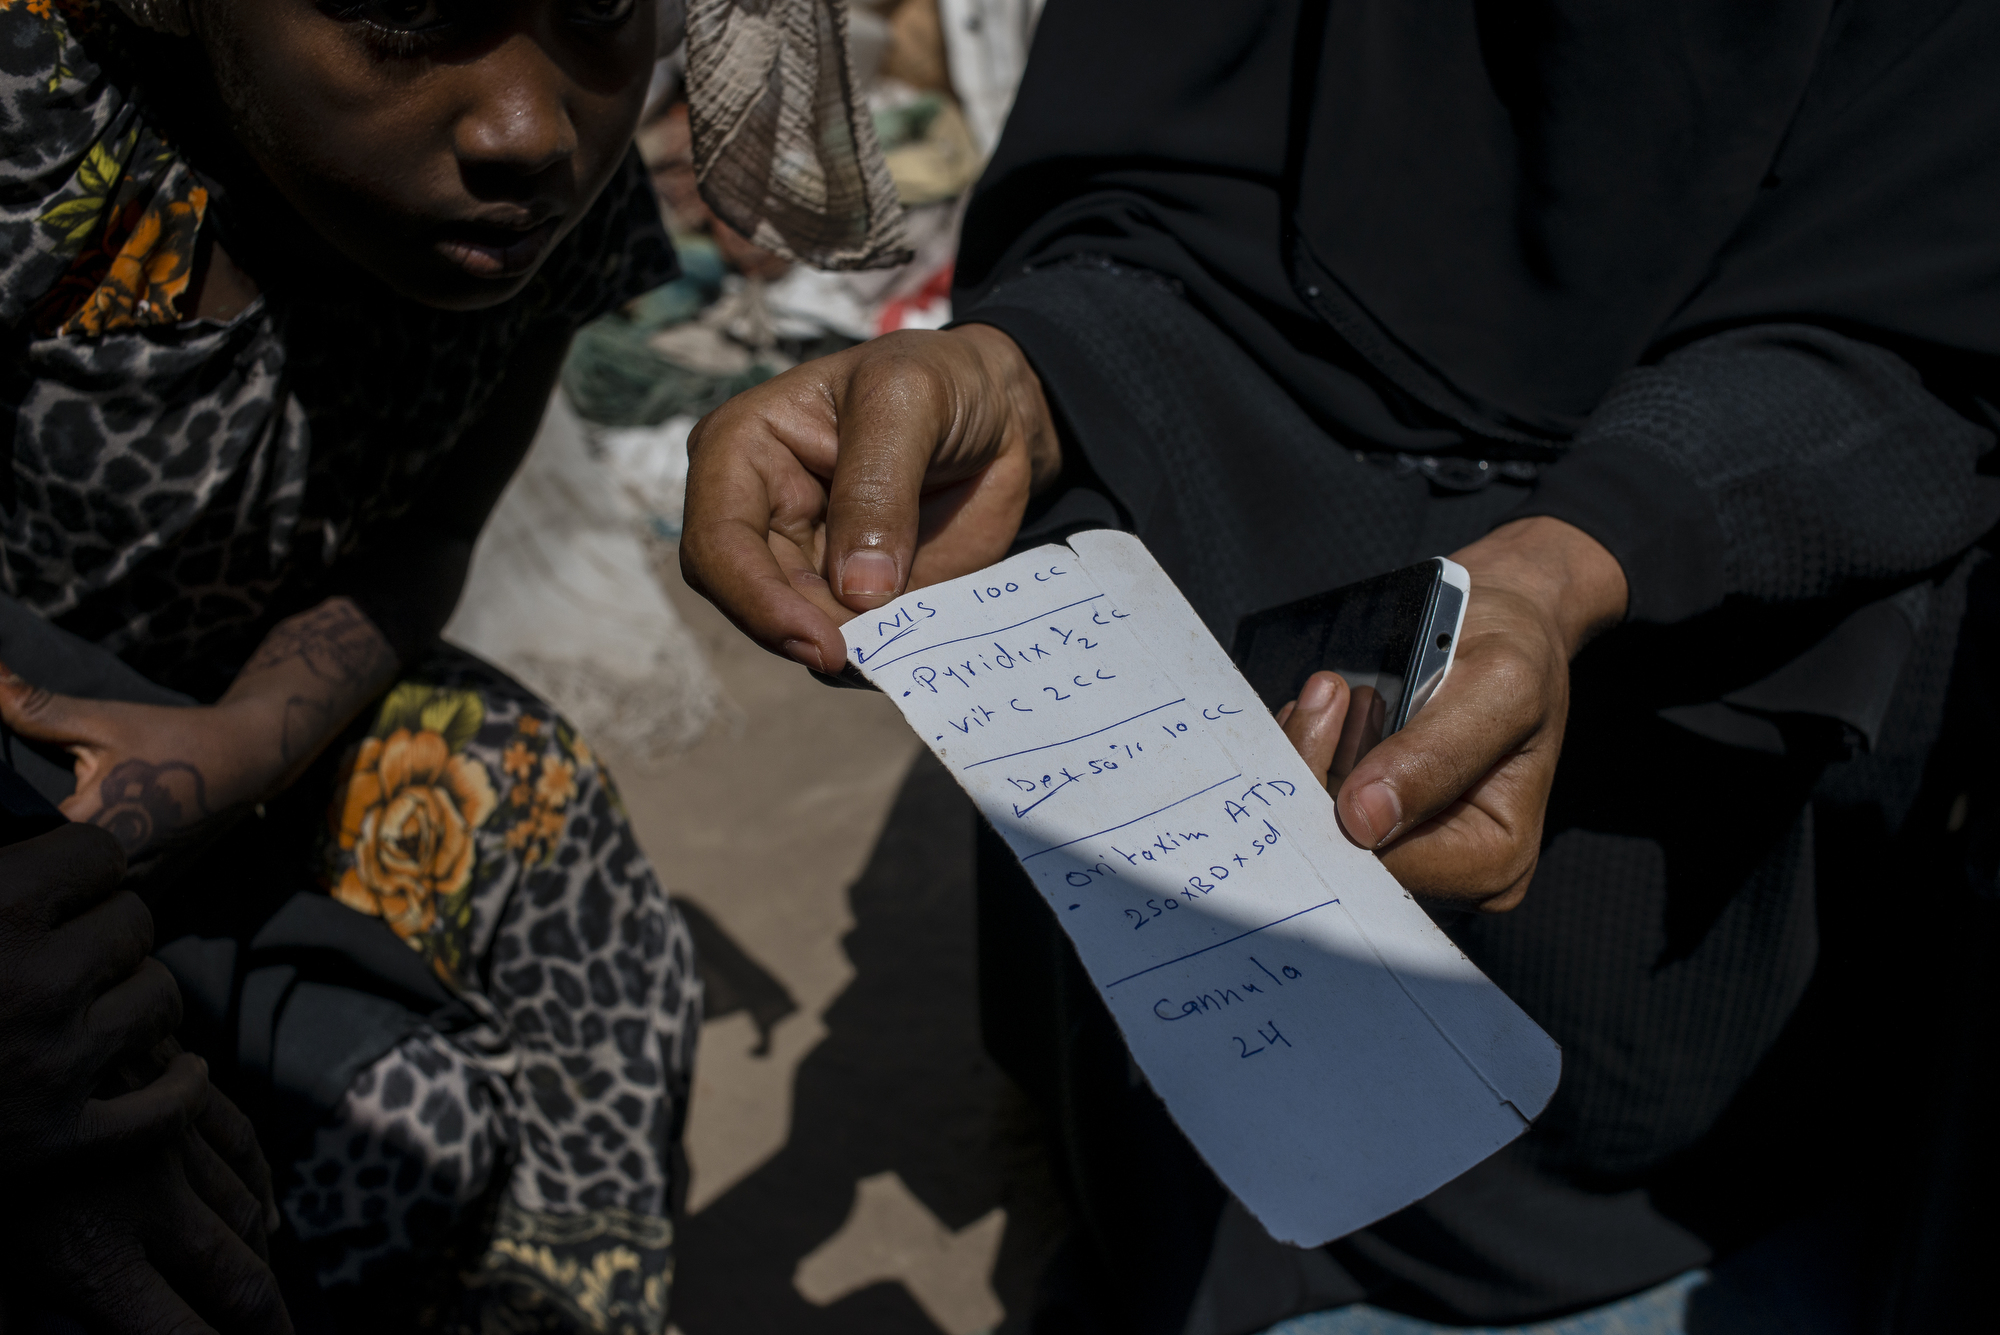 AlexPotter_Yemen_HumanitarianSituation_South_17.JPG